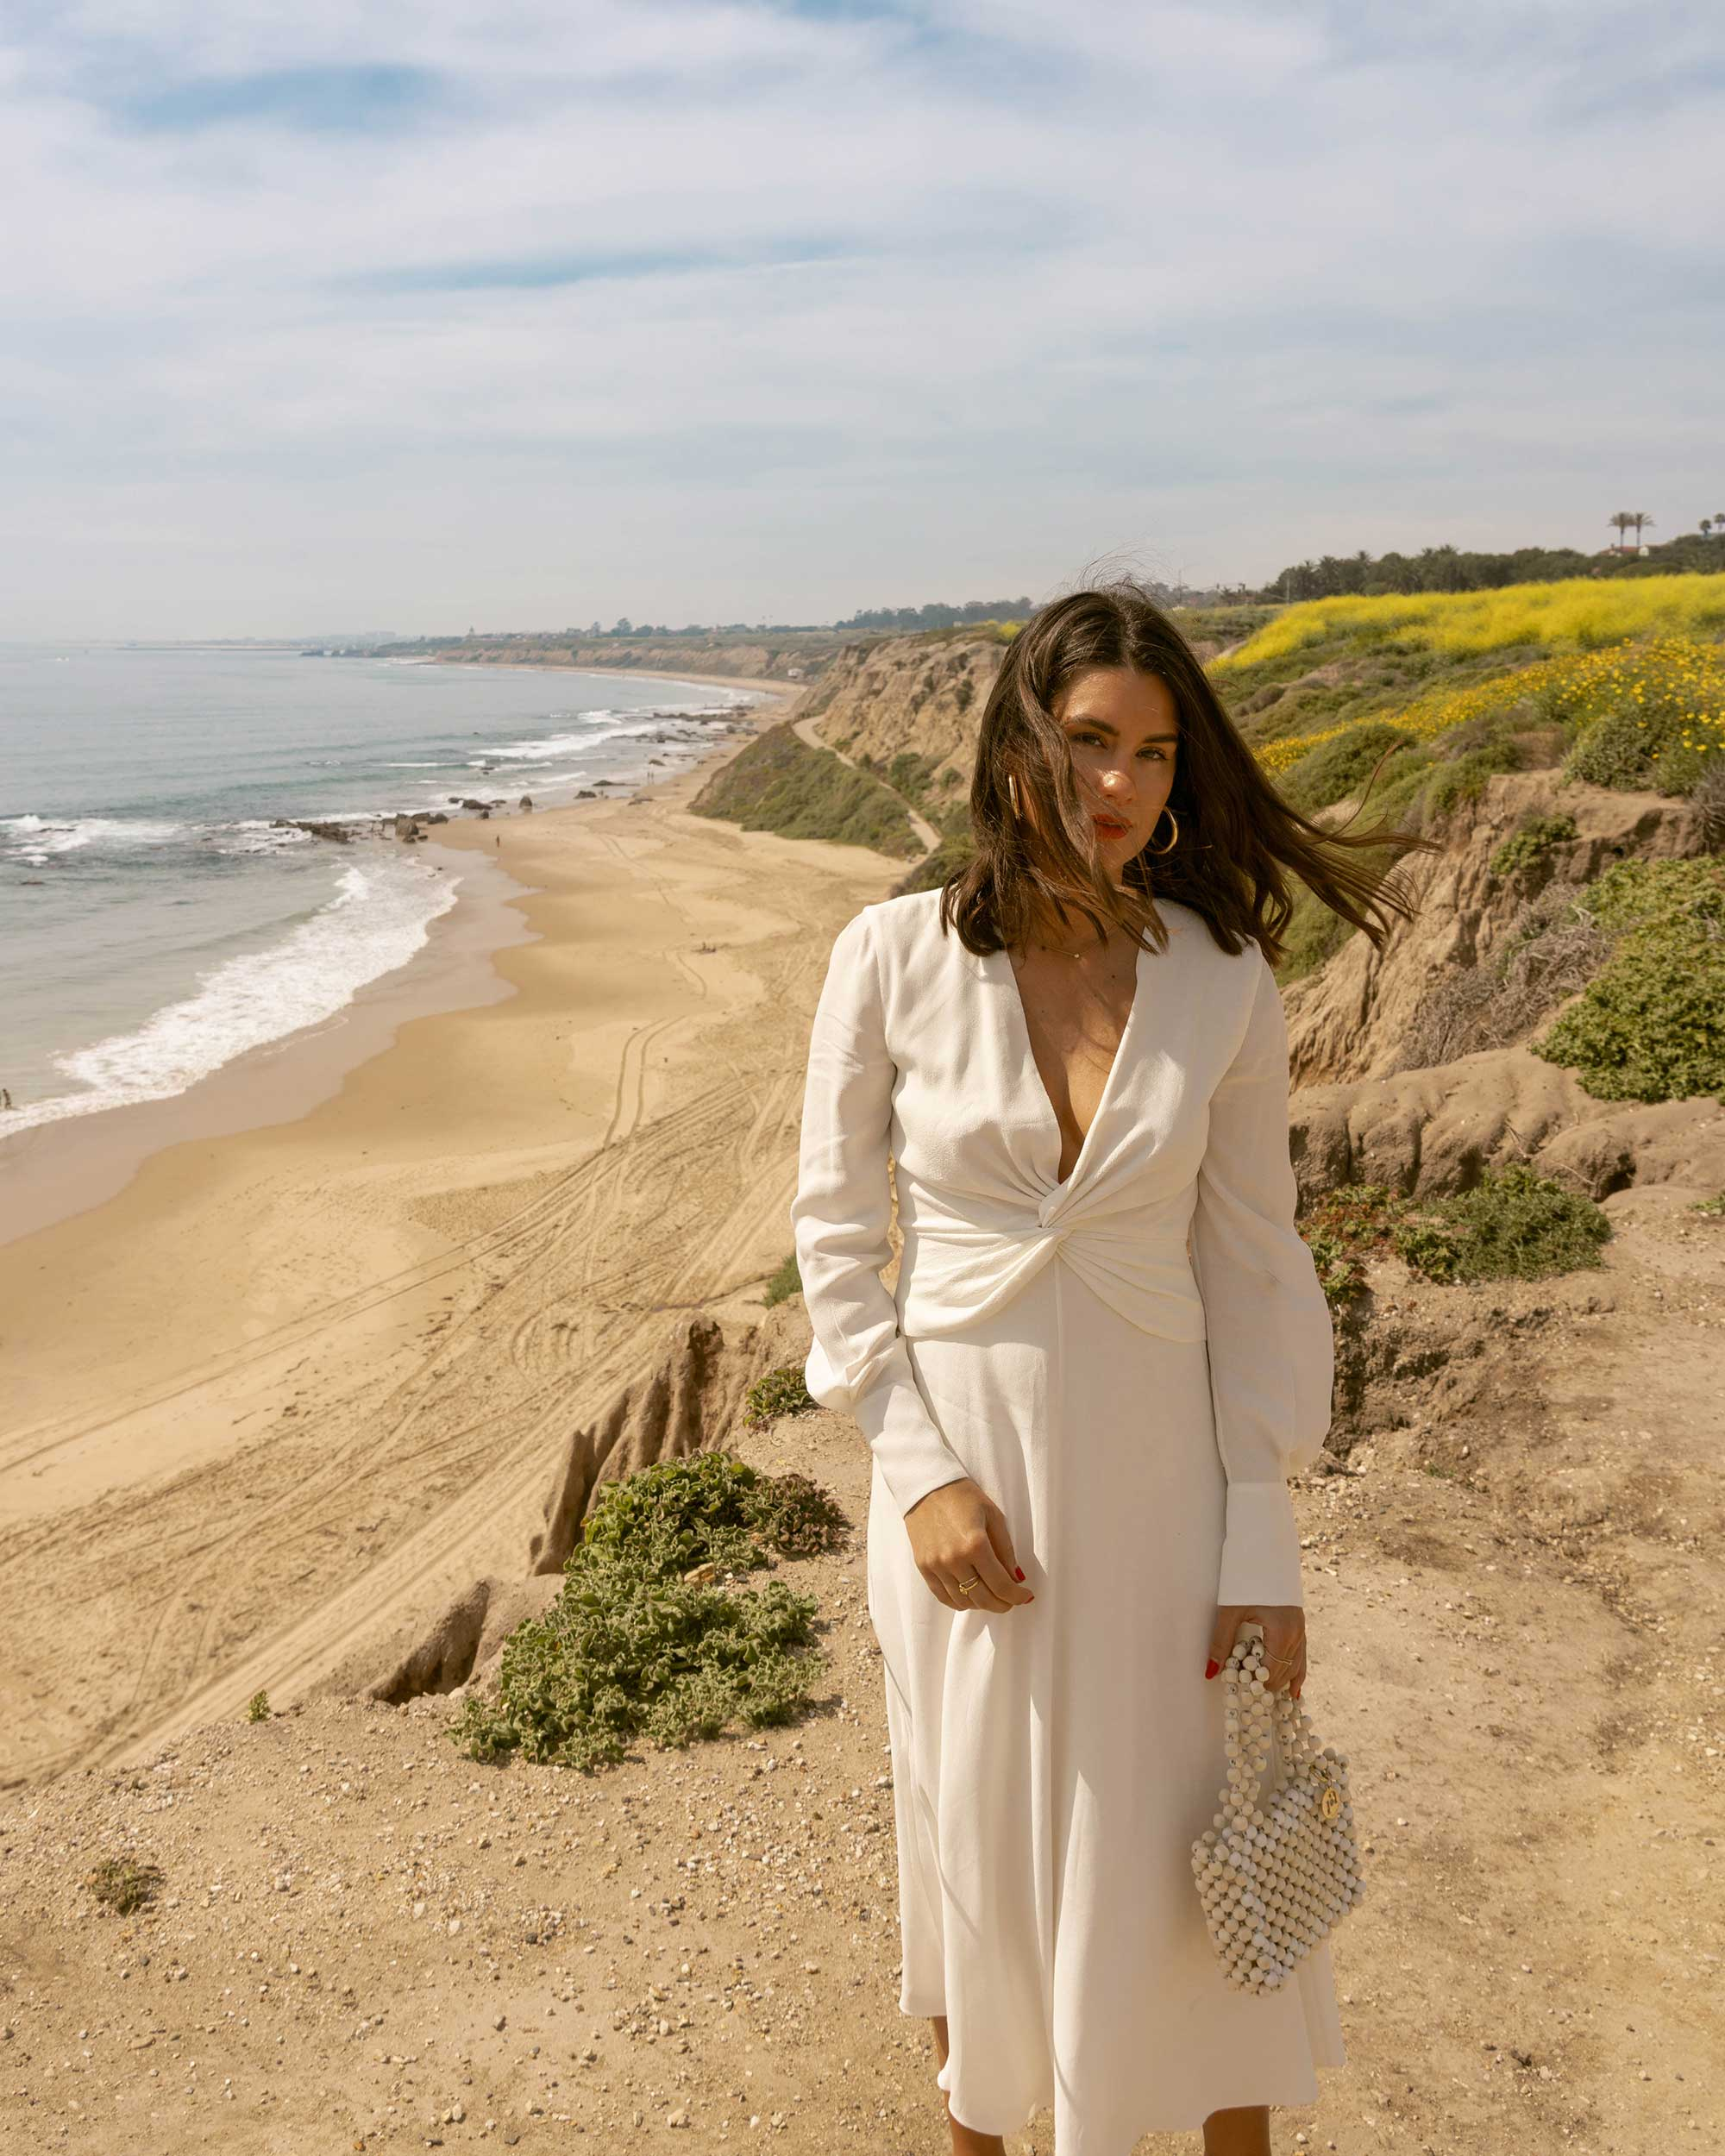 Sarah Butler of Sarah Styles Seattle wears Equipment Faun crepe midi dress in white with a flatteringly knotted front and plunging neckline for the perfect spring outfit | @sarahchristine -10.jpg